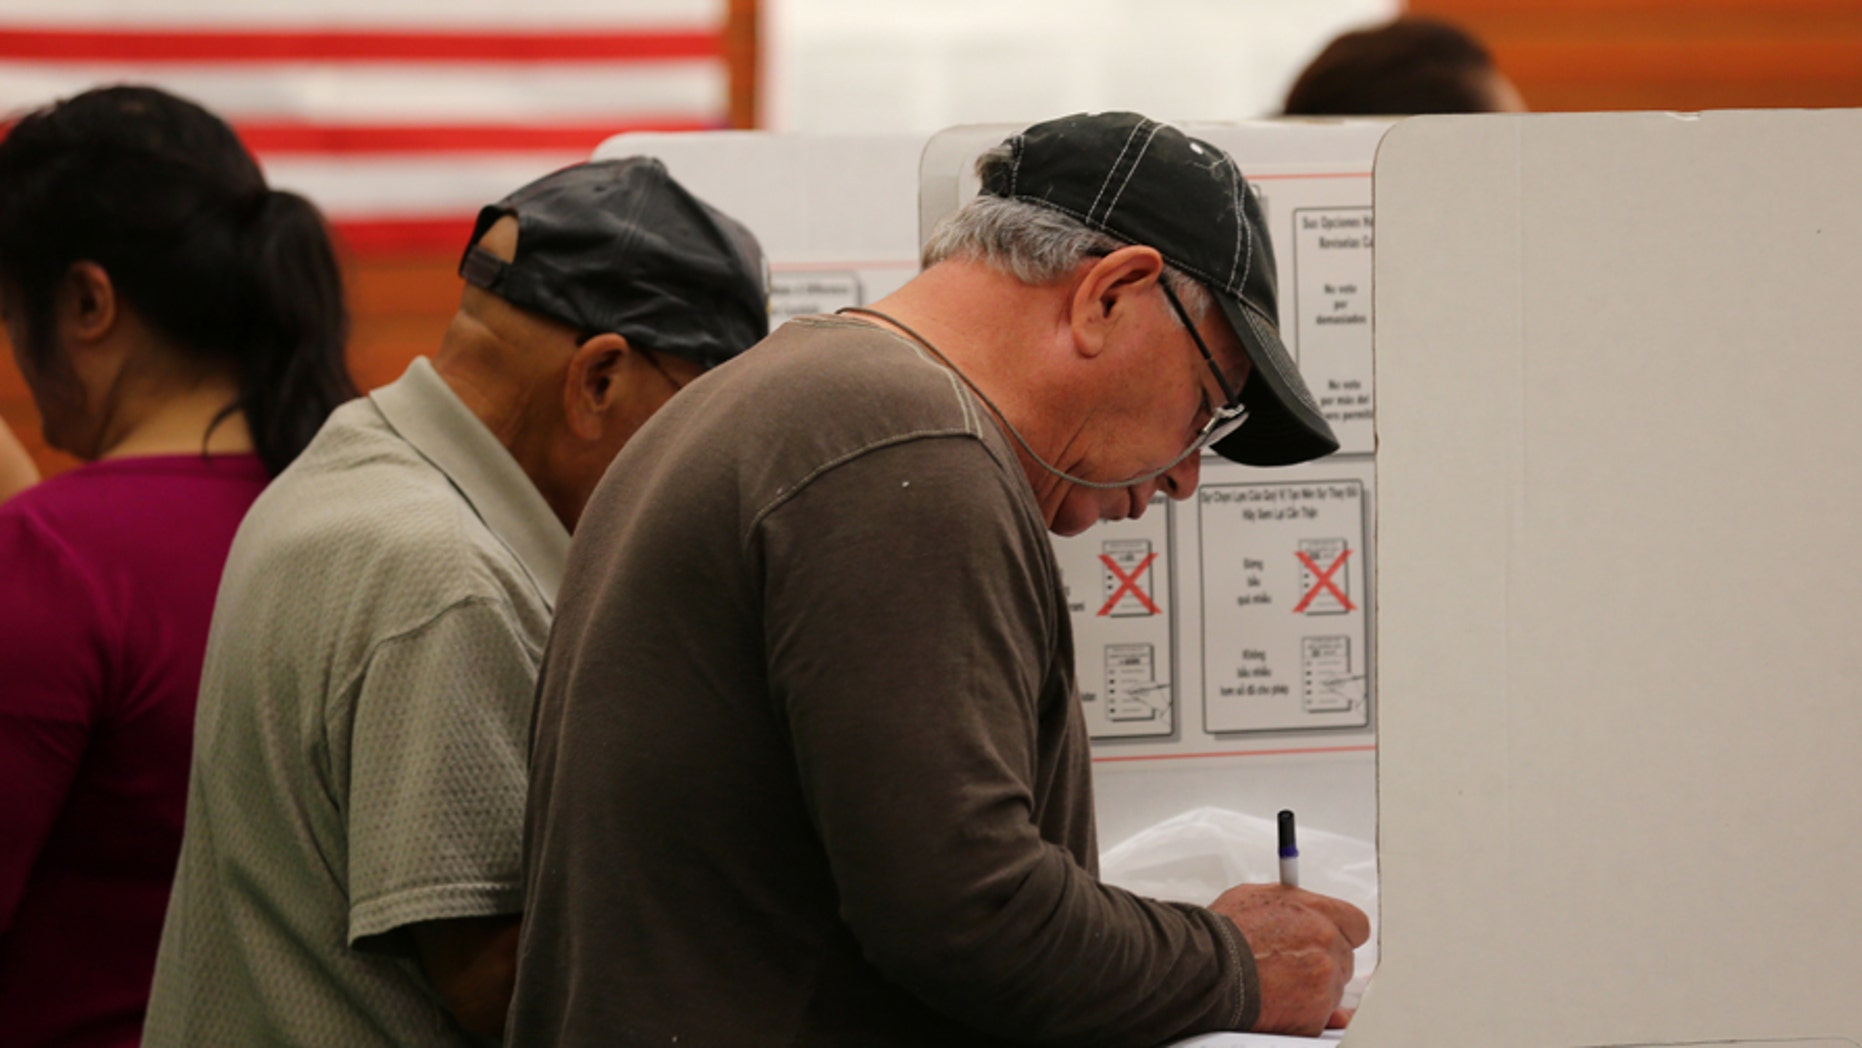 California voters are seen casting ballots in the November 2016 election. California is one of the states where local jurisdictions use 'ranked-choice voting,' something Maine is struggling to implement statewide.